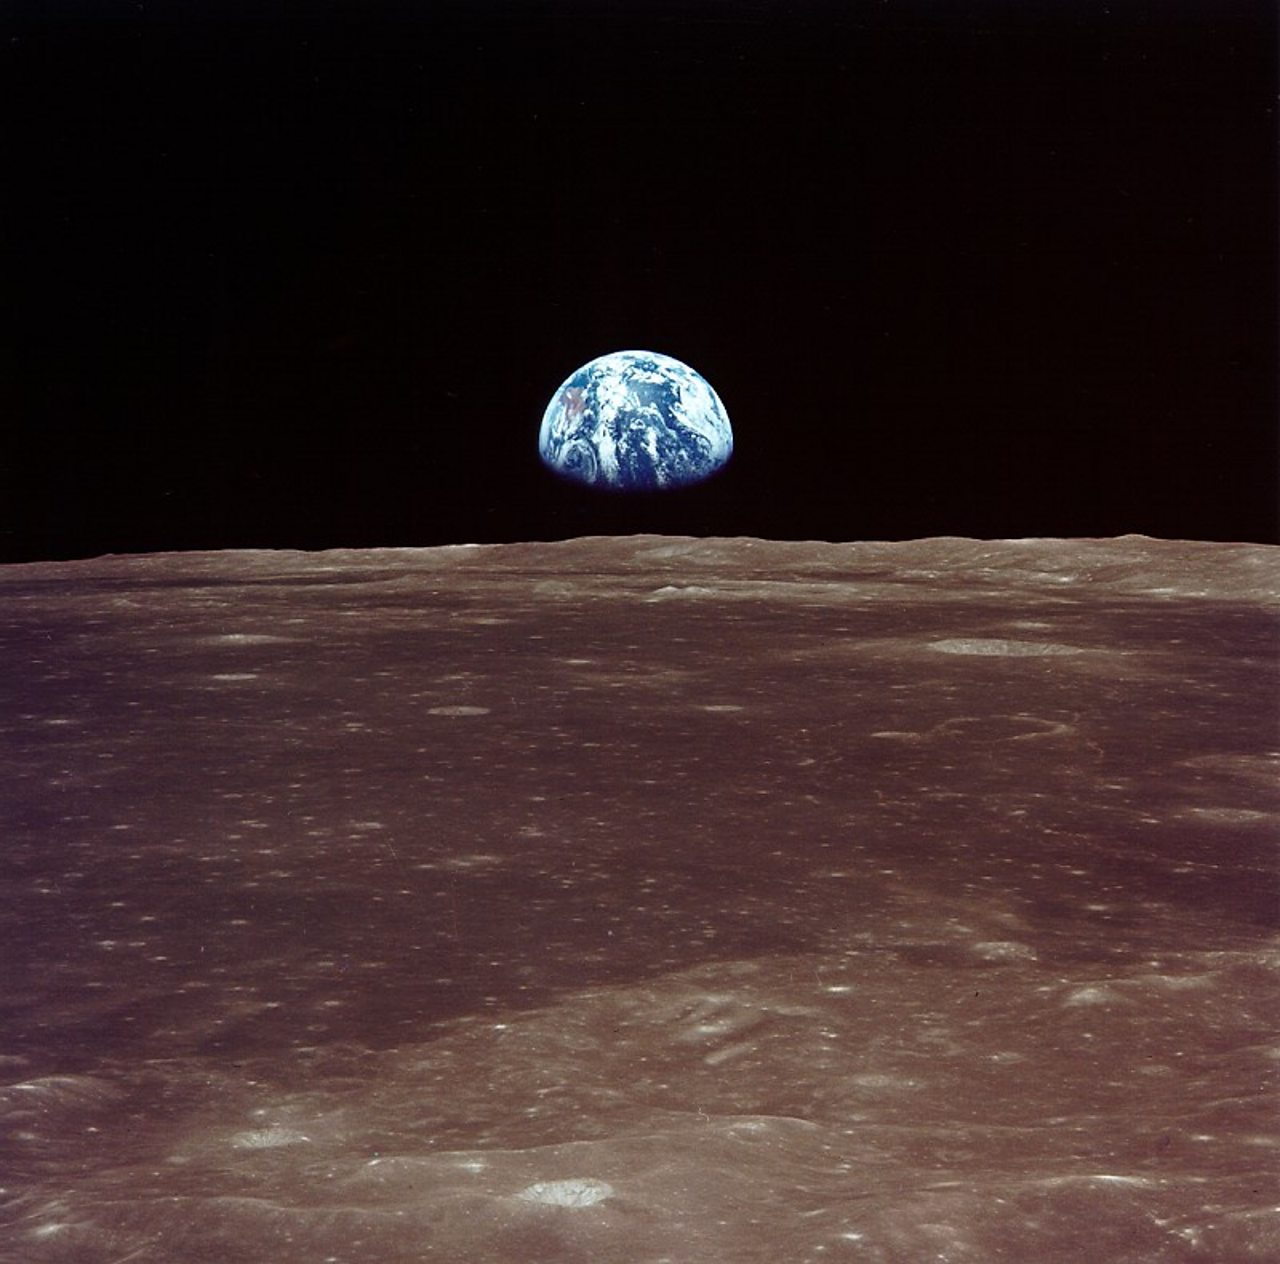 Photograph of the Earth from the Moon.